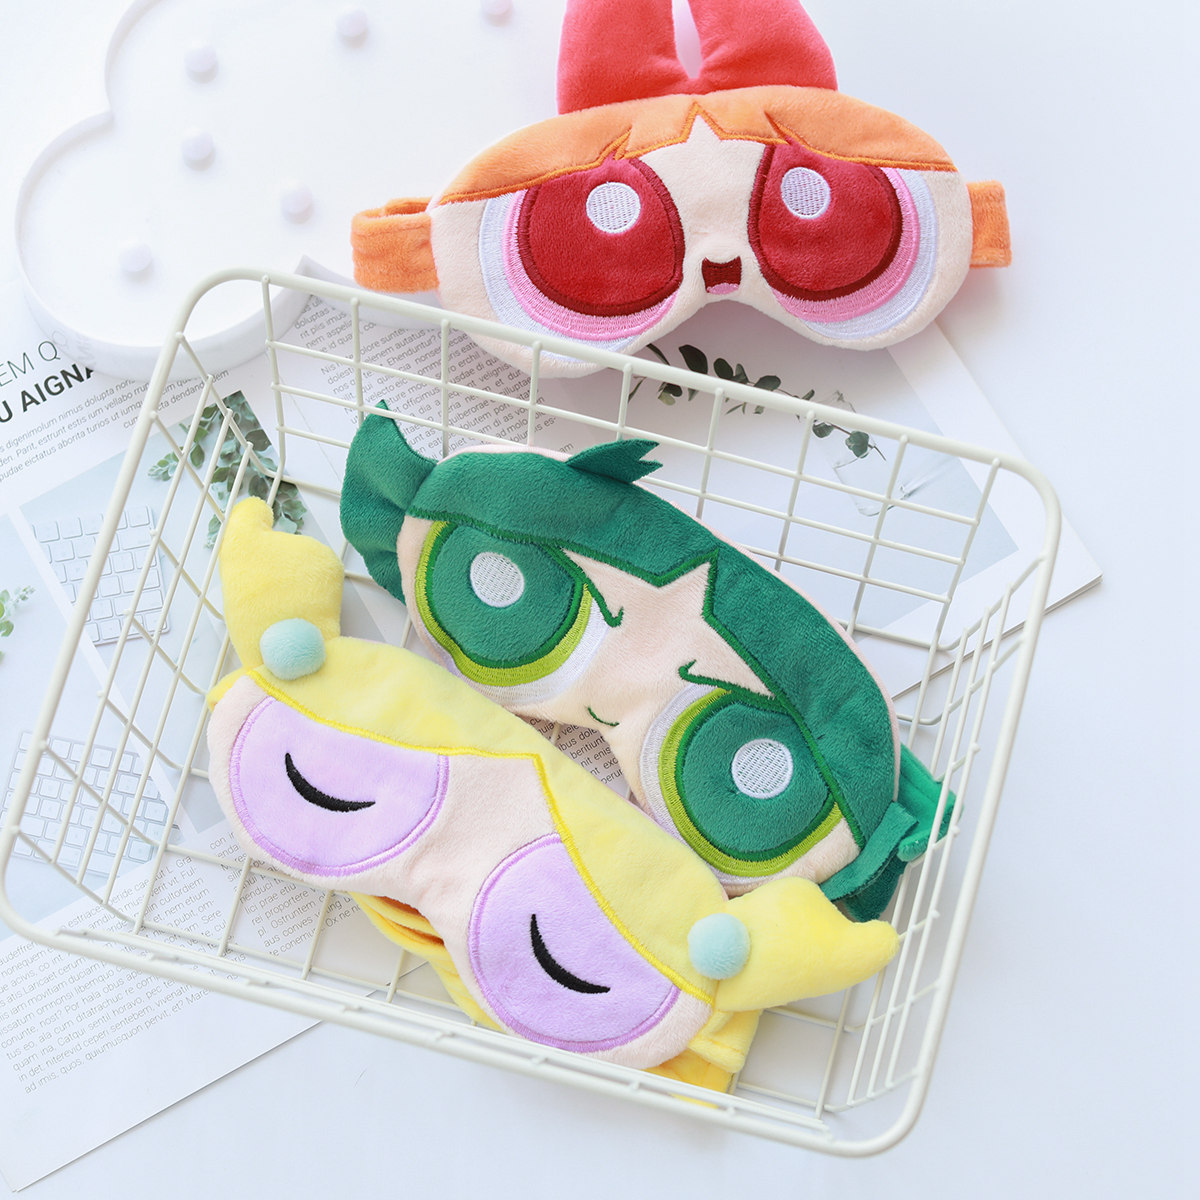 Cartoon The Powerpuff Girls Cute Eyeshade Travel Eyeshade Siesta Hu Yan Zhen